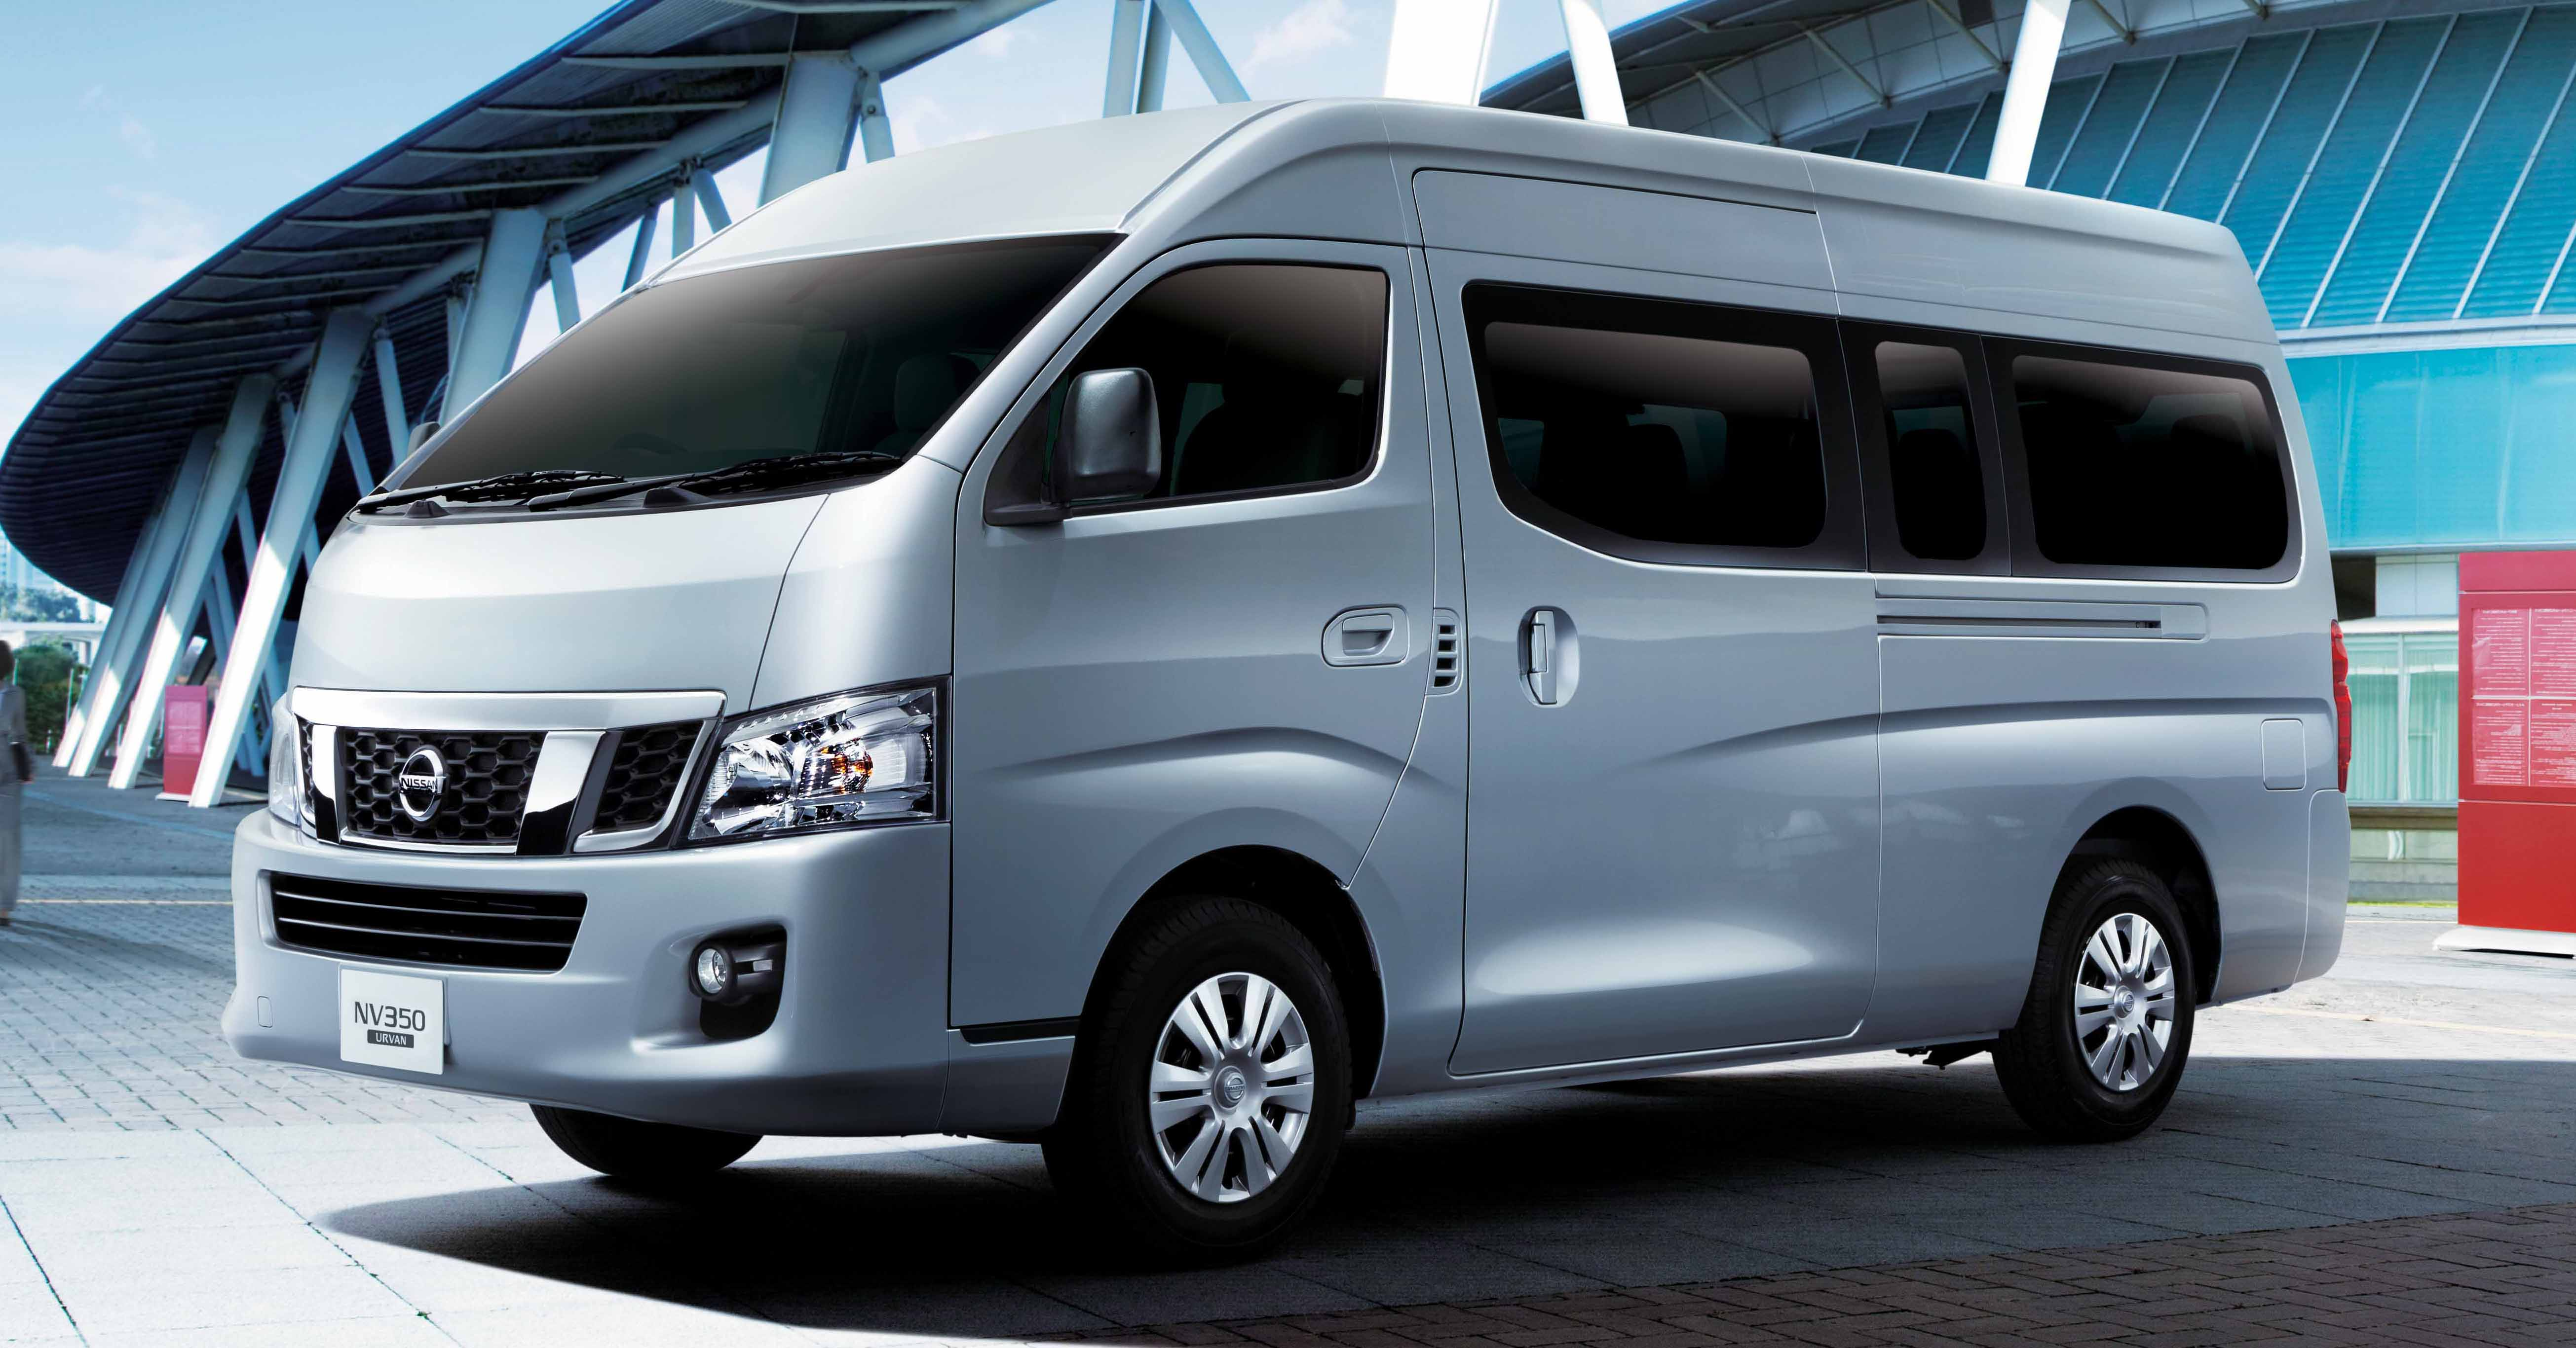 Nissan NV350 Urvan updated with new safety features